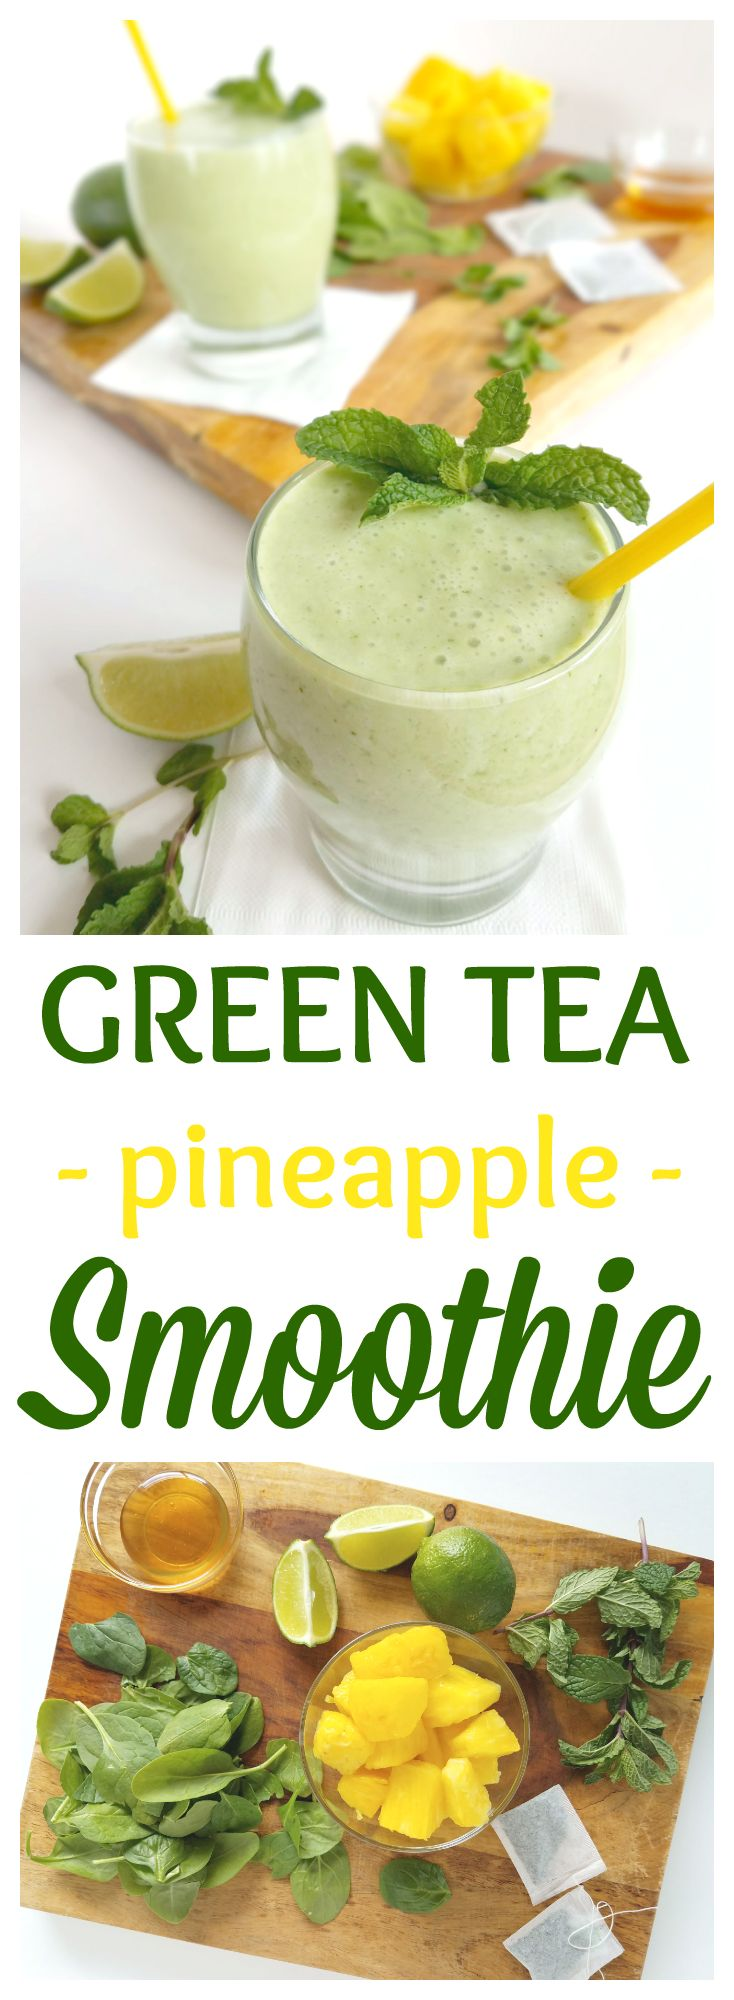 This Green Tea Smoothie with Pineapple and Spinach is refreshing and delicious, but it's also super nutritious and contains ingredients that may help soothe allergy symptoms! Gluten-free, dairy-free, nut-free, and Paleo with a vegan option!